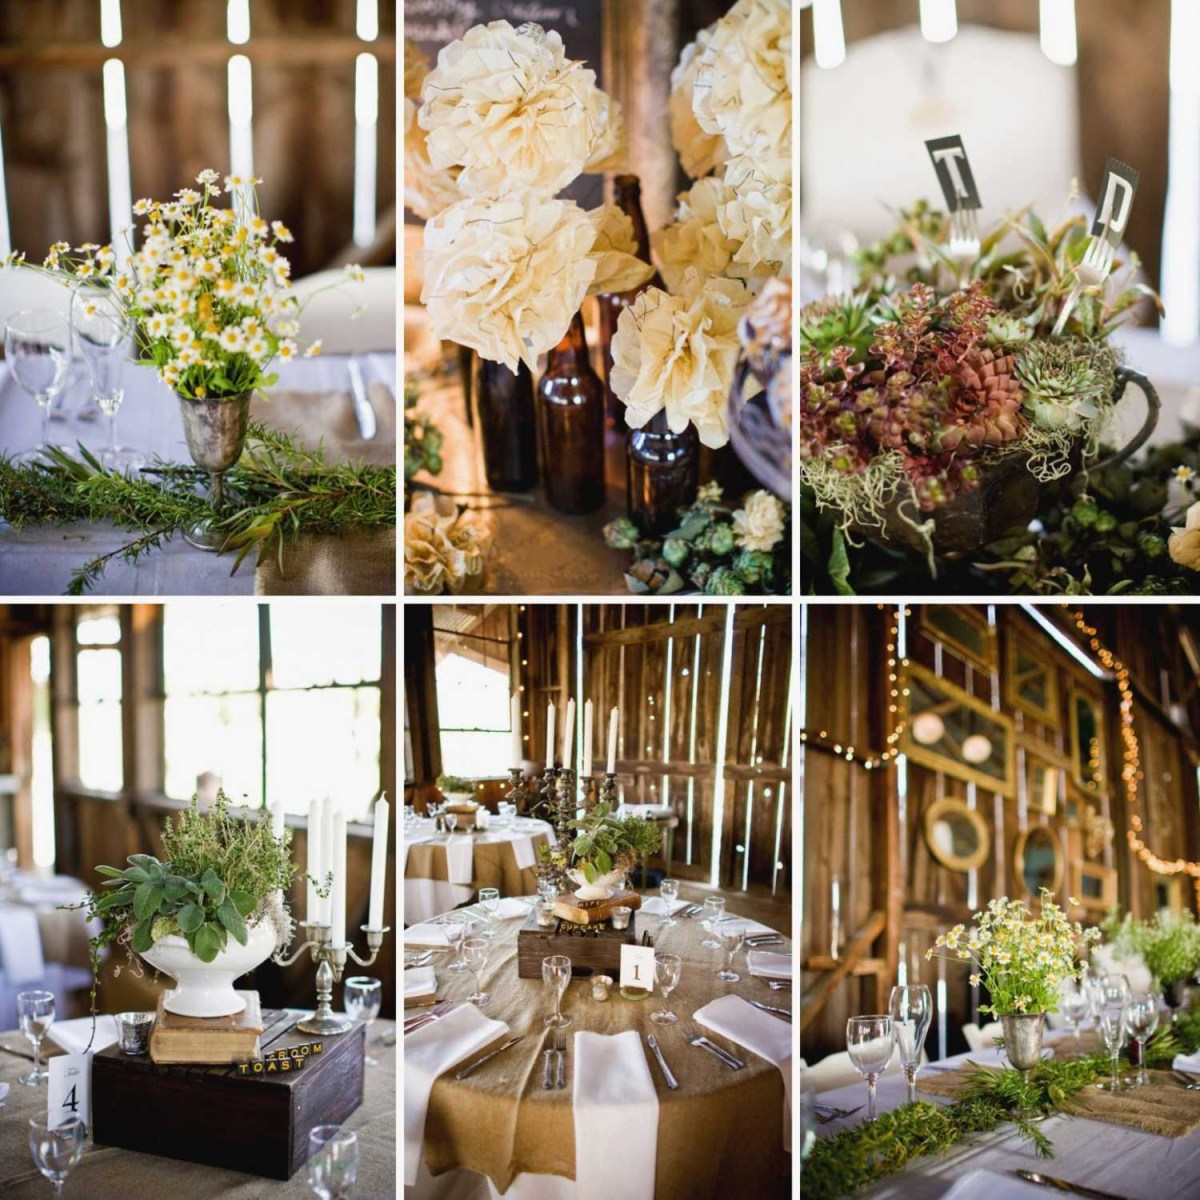 Western Wedding Decoration Ideas Western Wedding Decor Western Wedding Decoration Ideas Decor